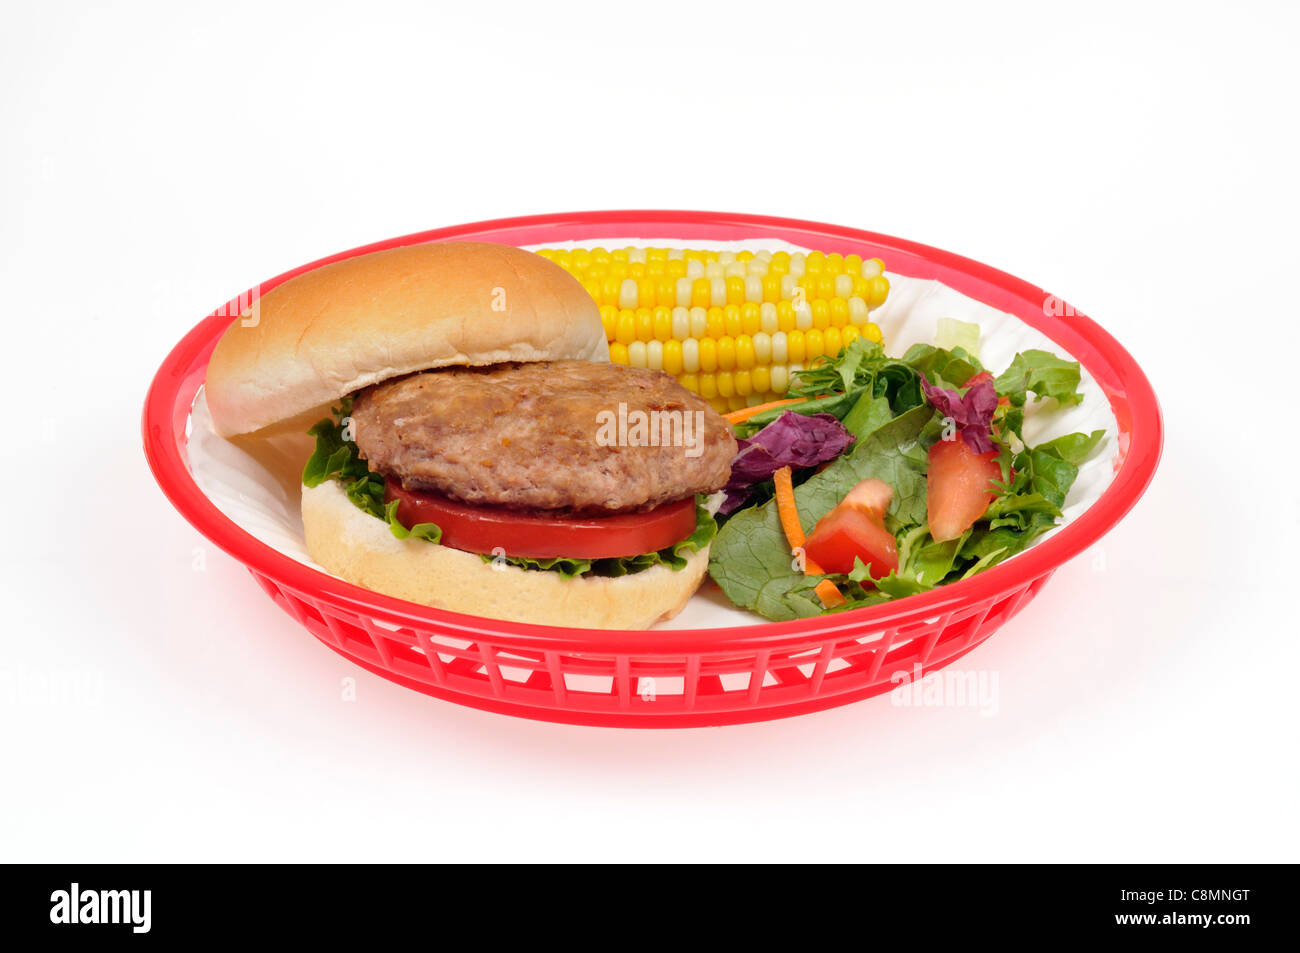 Turkey burger with lettuce and tomato in bread roll in red retro plastic basket with ear of corn and salad on white - Stock Image